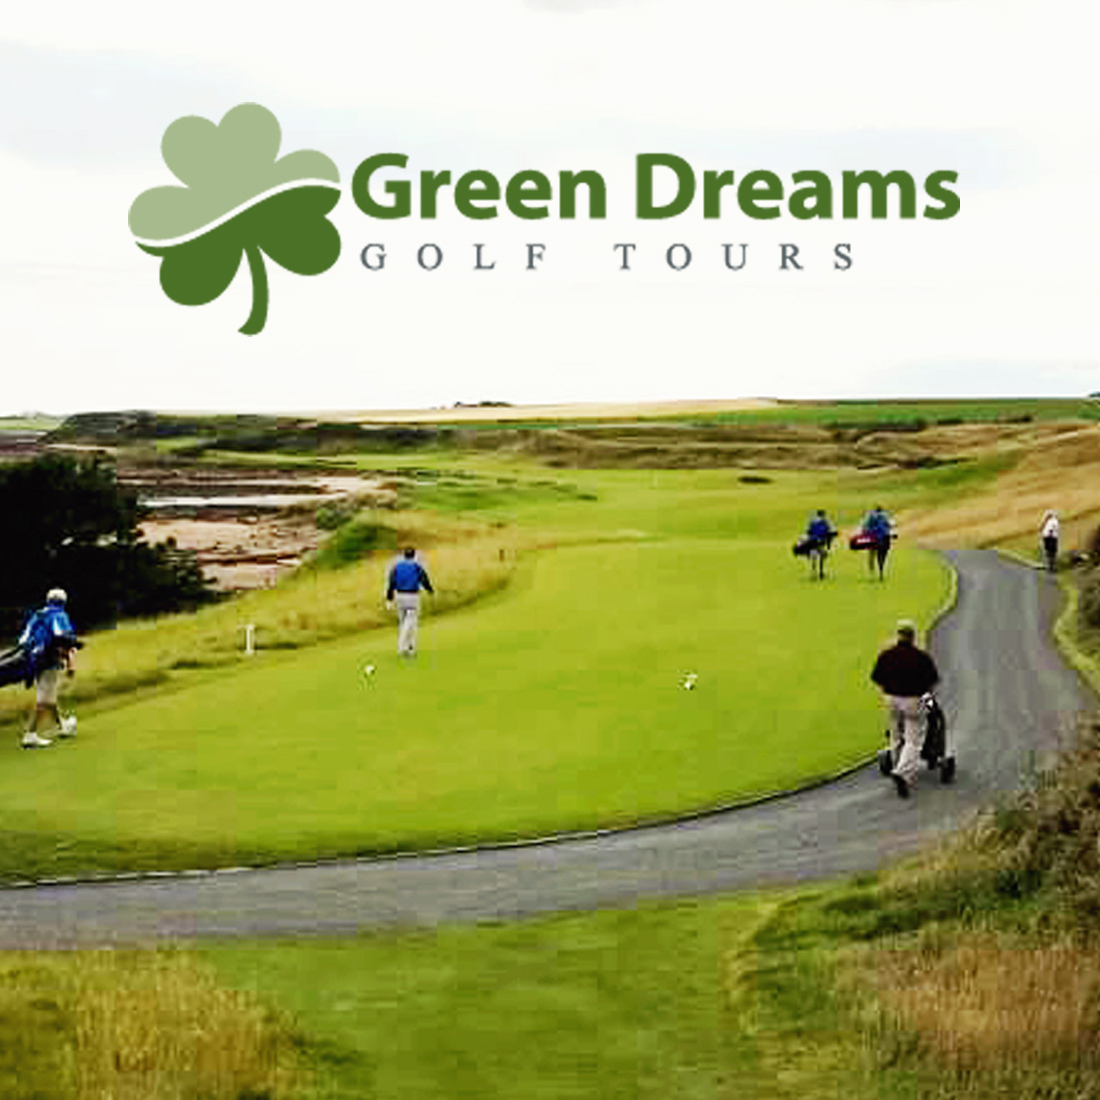 Green Dreams Golf Tours - Website Design